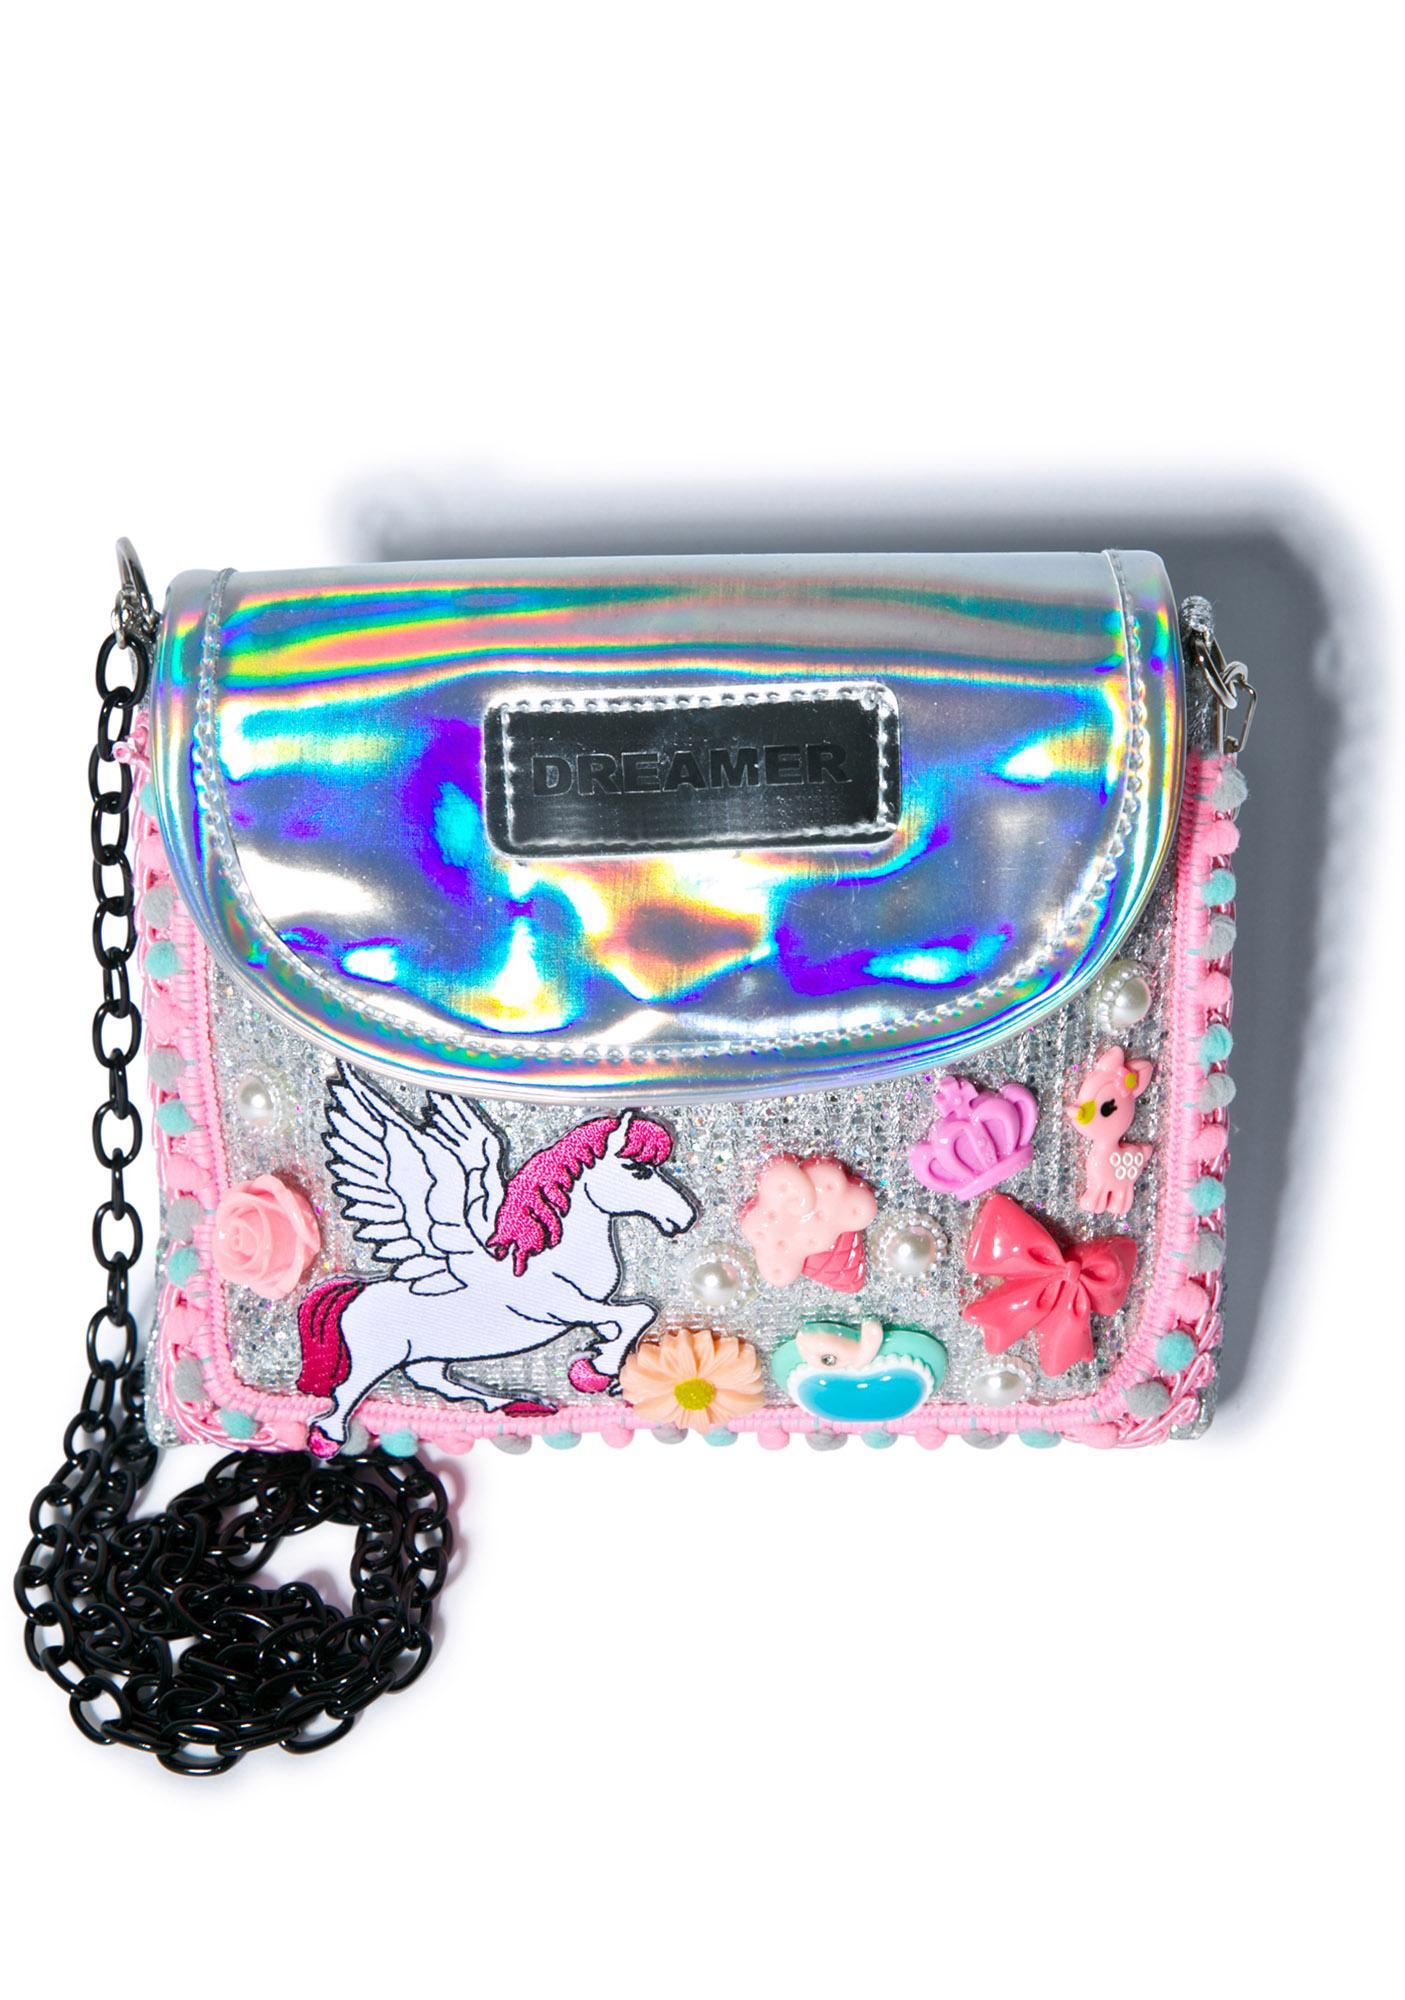 Unicorn Dreamer Bag